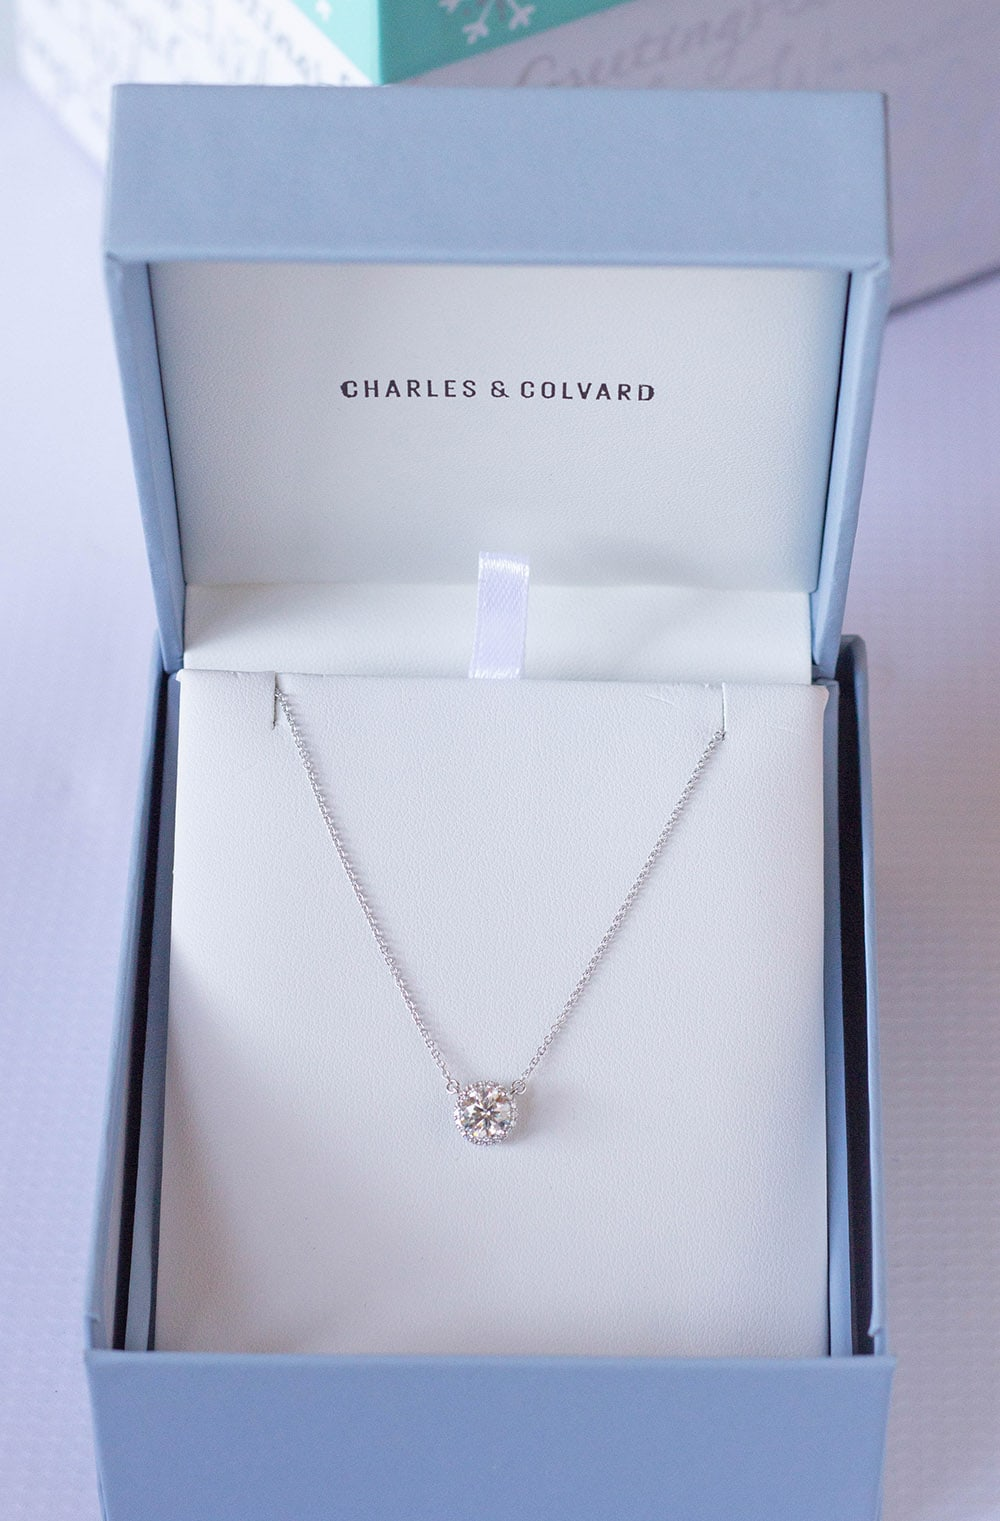 Charles & Colvard Signature Halo Moissanite Necklace 0.91CTW in 14K White Gold